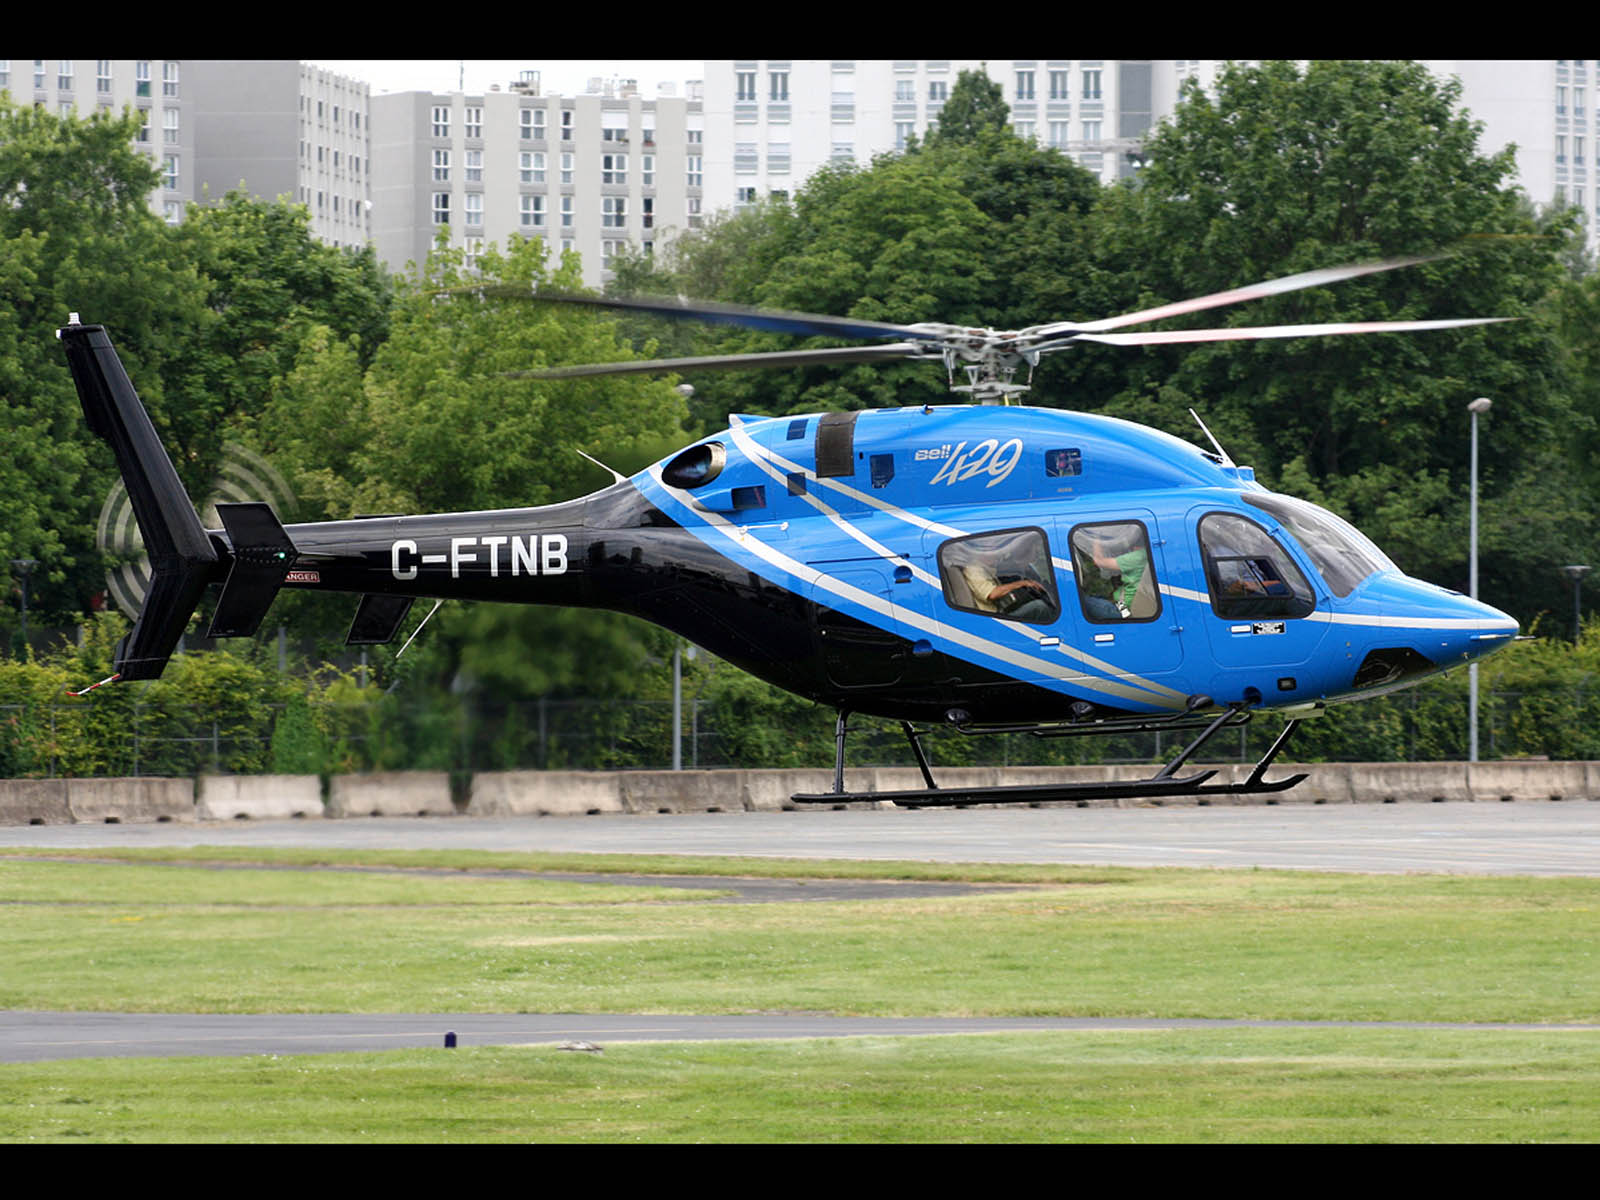 wallpapers bell 429 globalranger helicopter desktop wallpapers bell 1600x1200